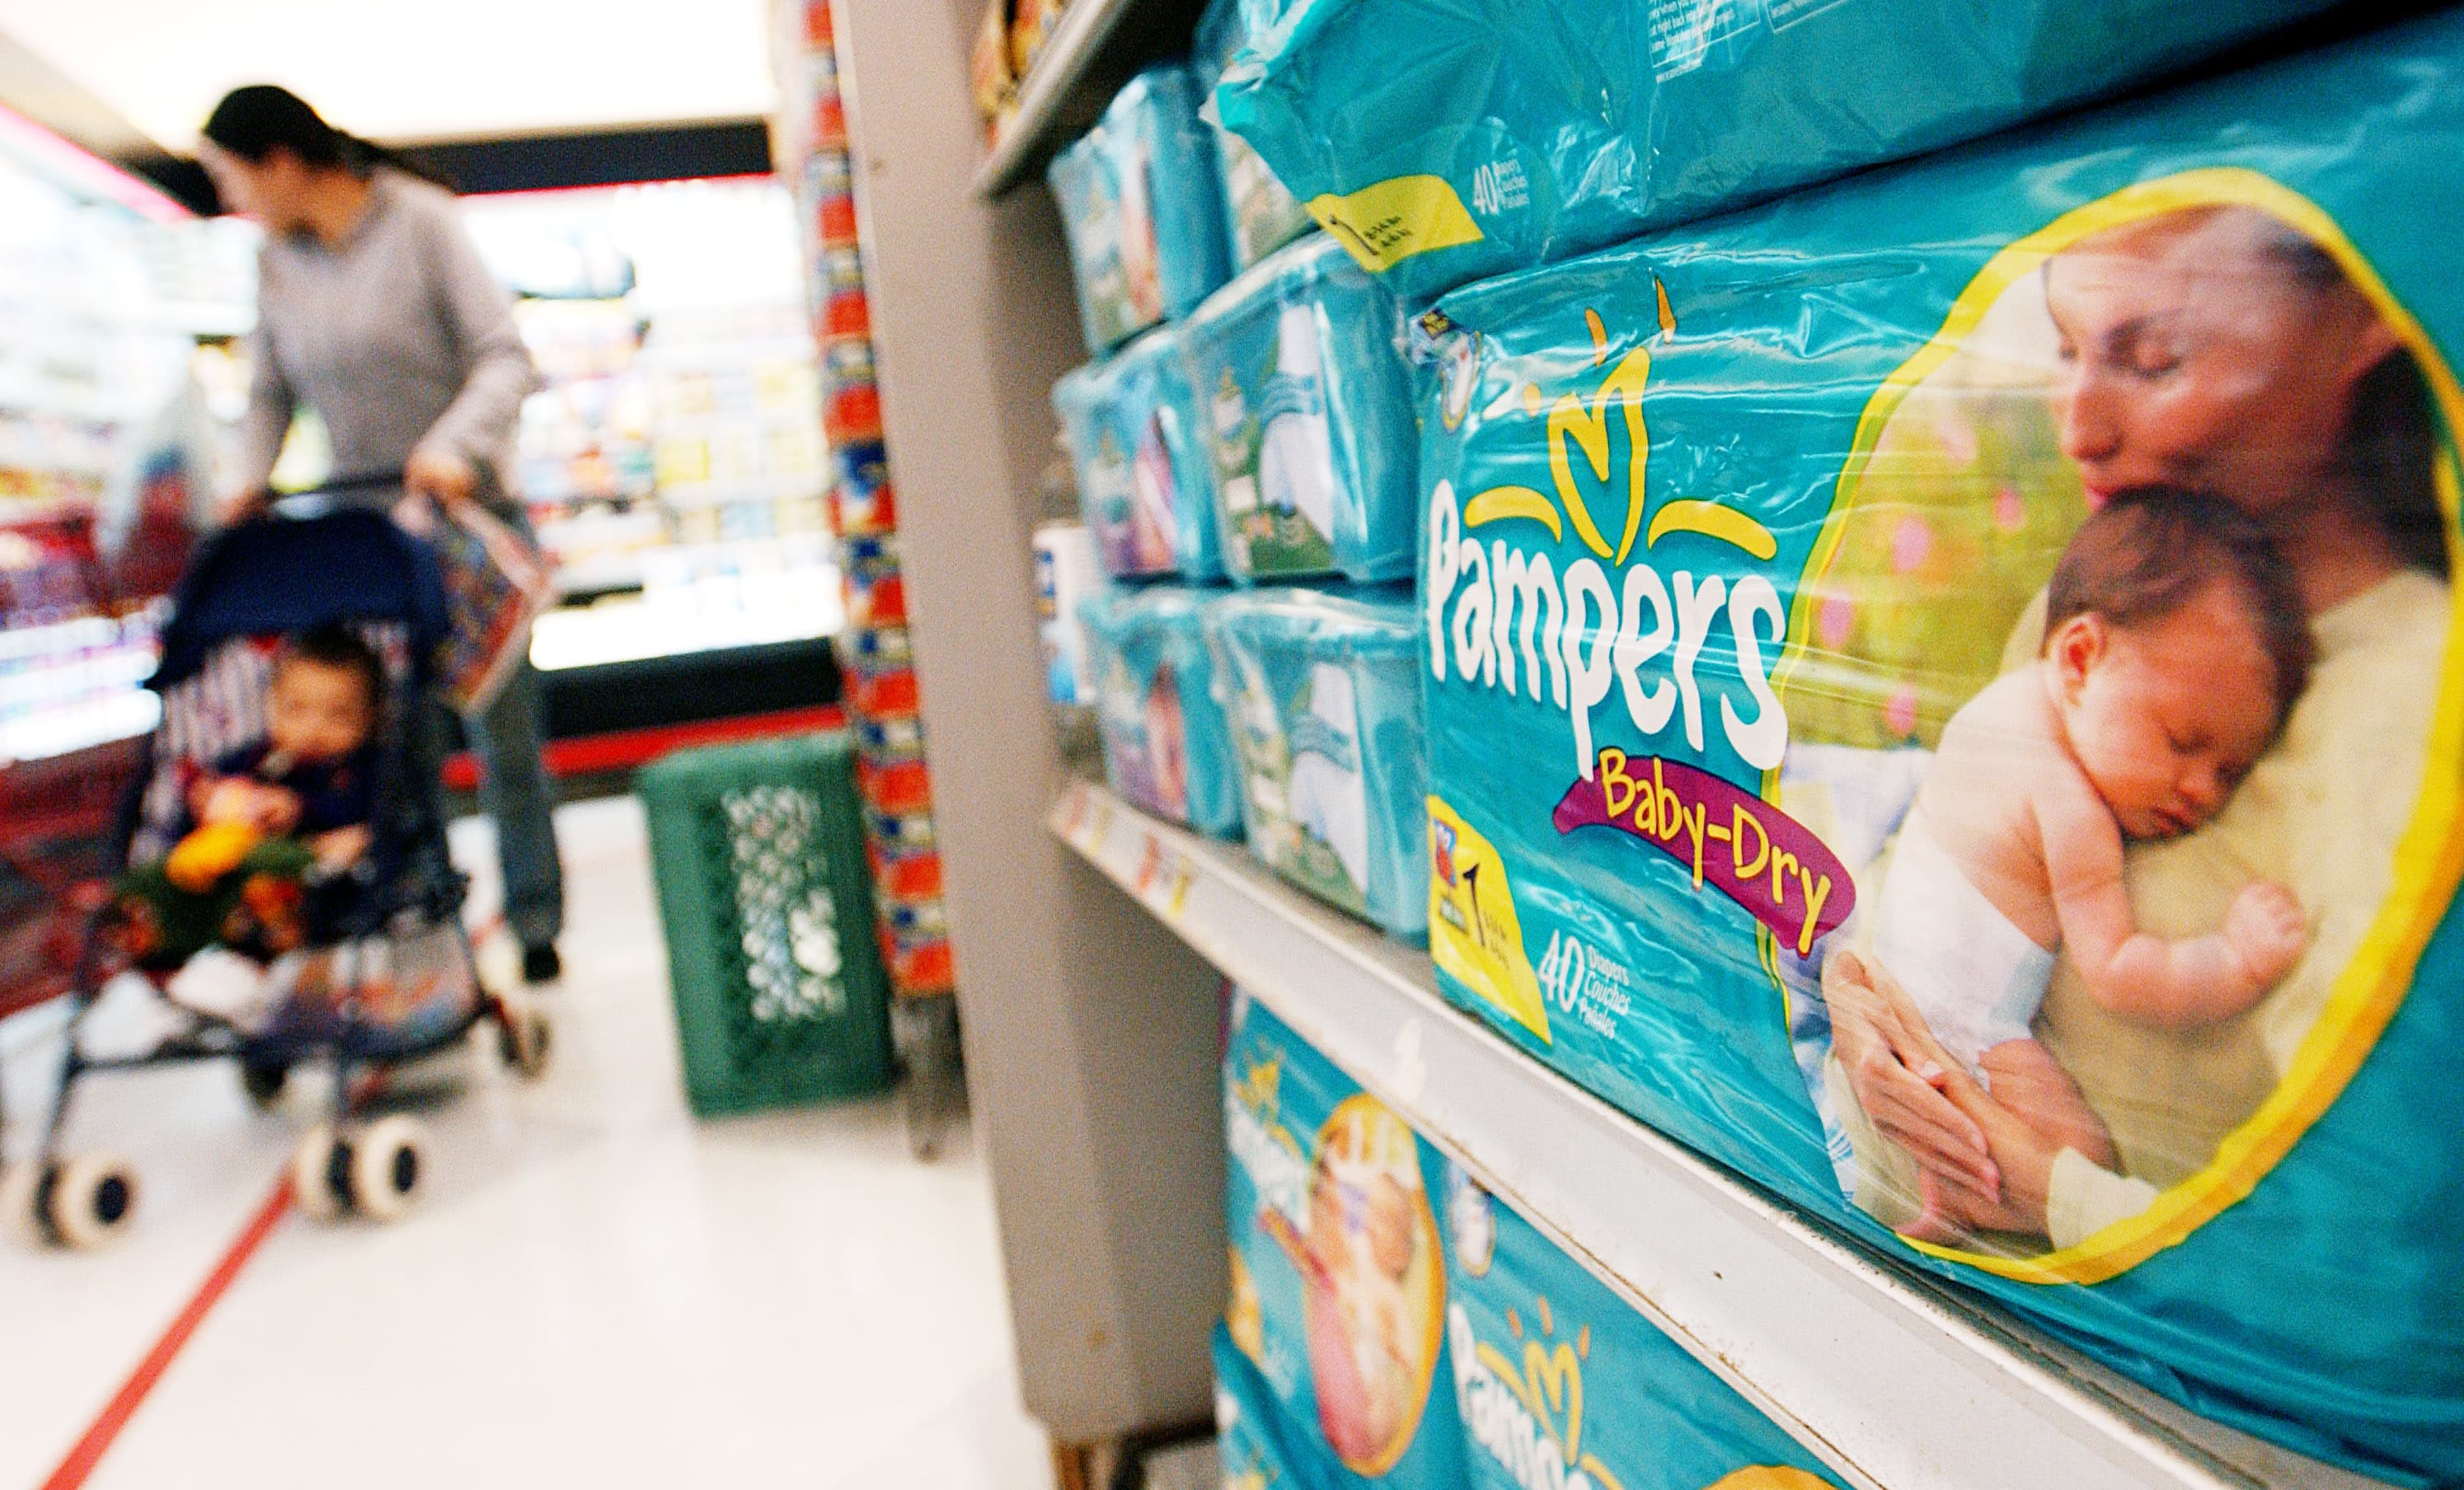 Procter & Gamble will raise prices in September to fight higher commodity costs